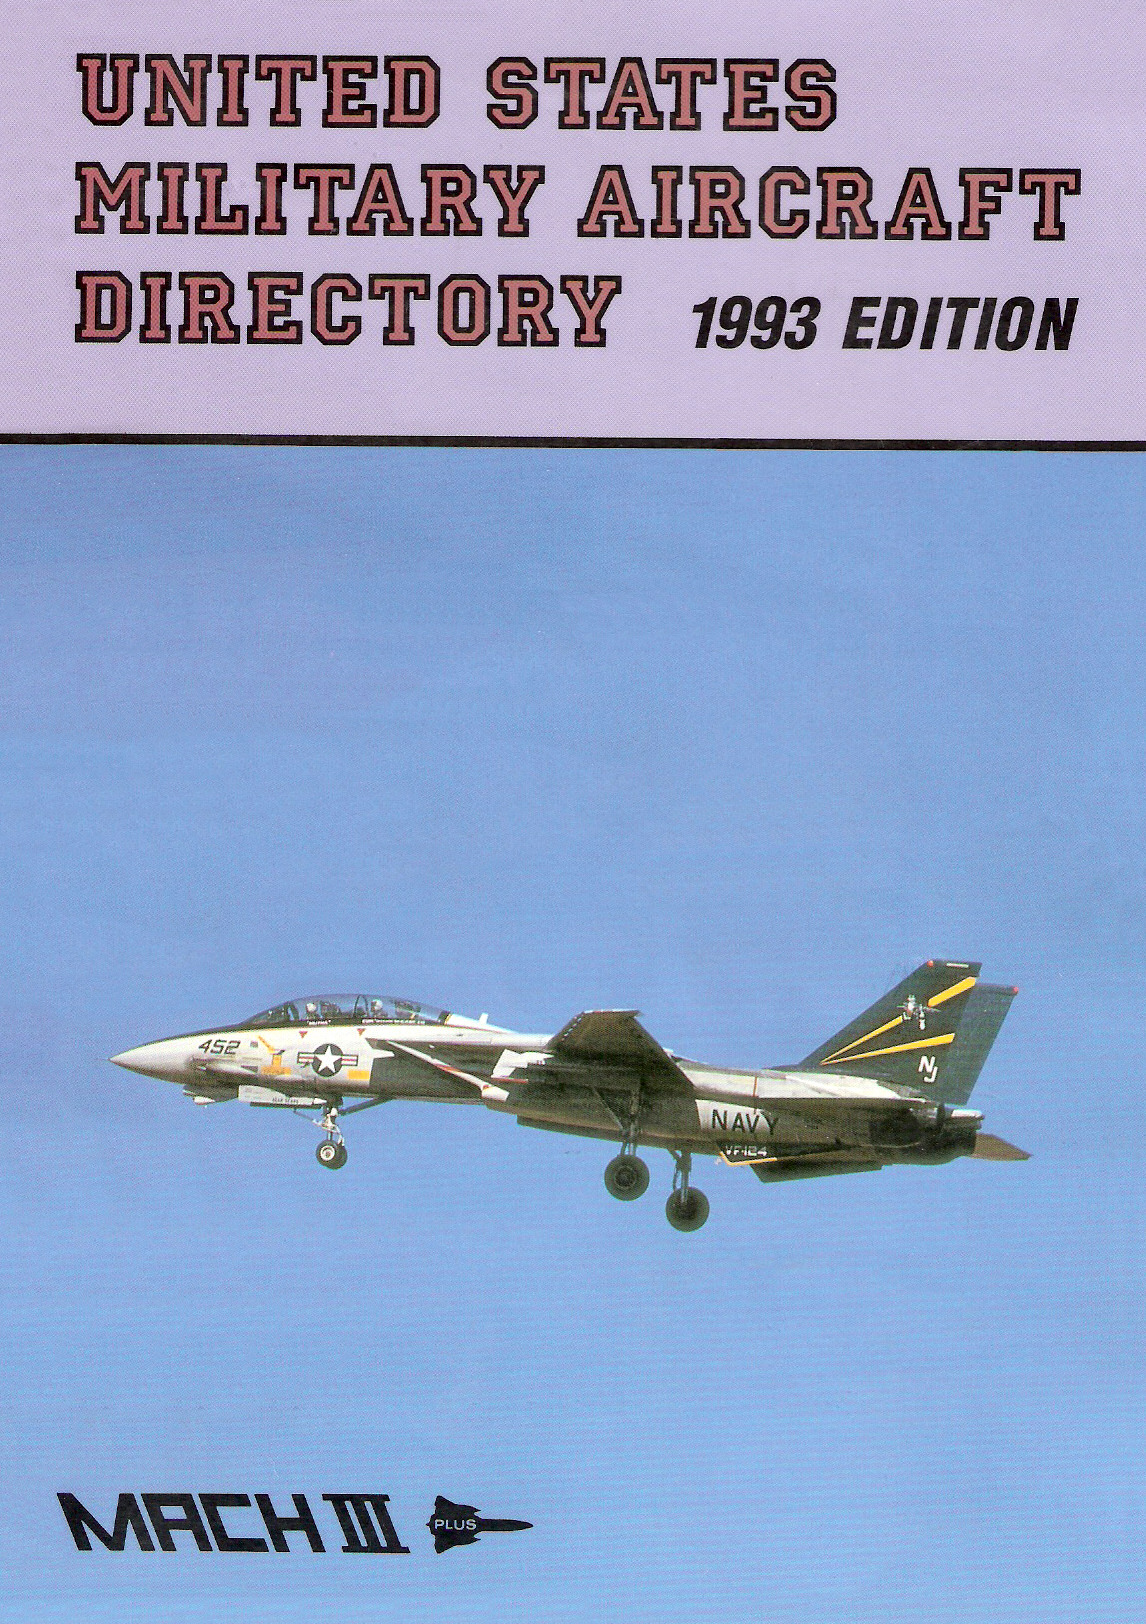 United States Military Aircraft Directory, 1993